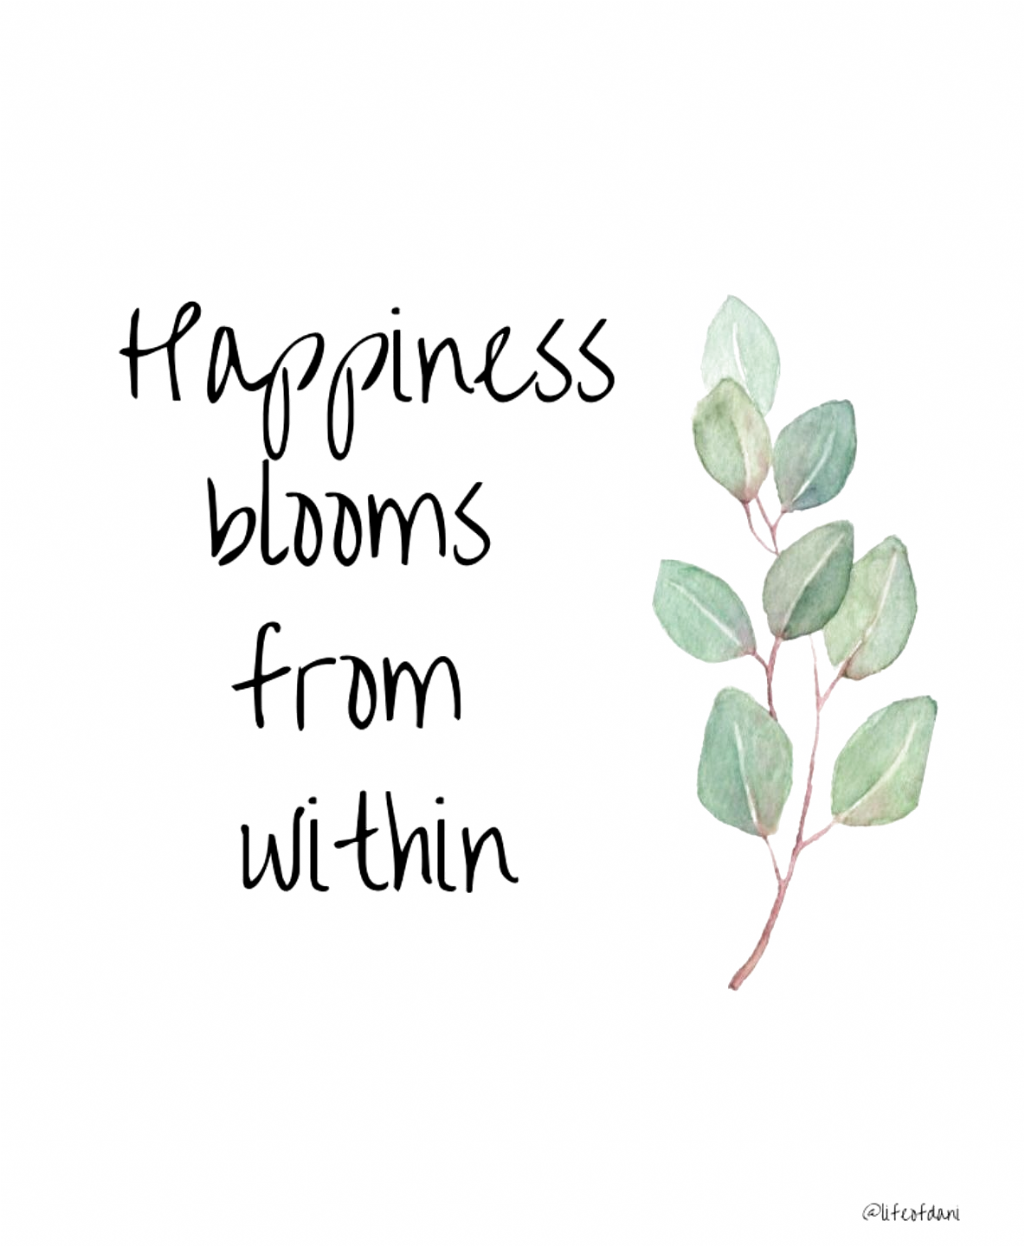 Digital download for instant home decoration #homedecor #inspirational #quotes #happiness #digital #etsy #etsyseller #wallart #flowers #printables #Eyebrows